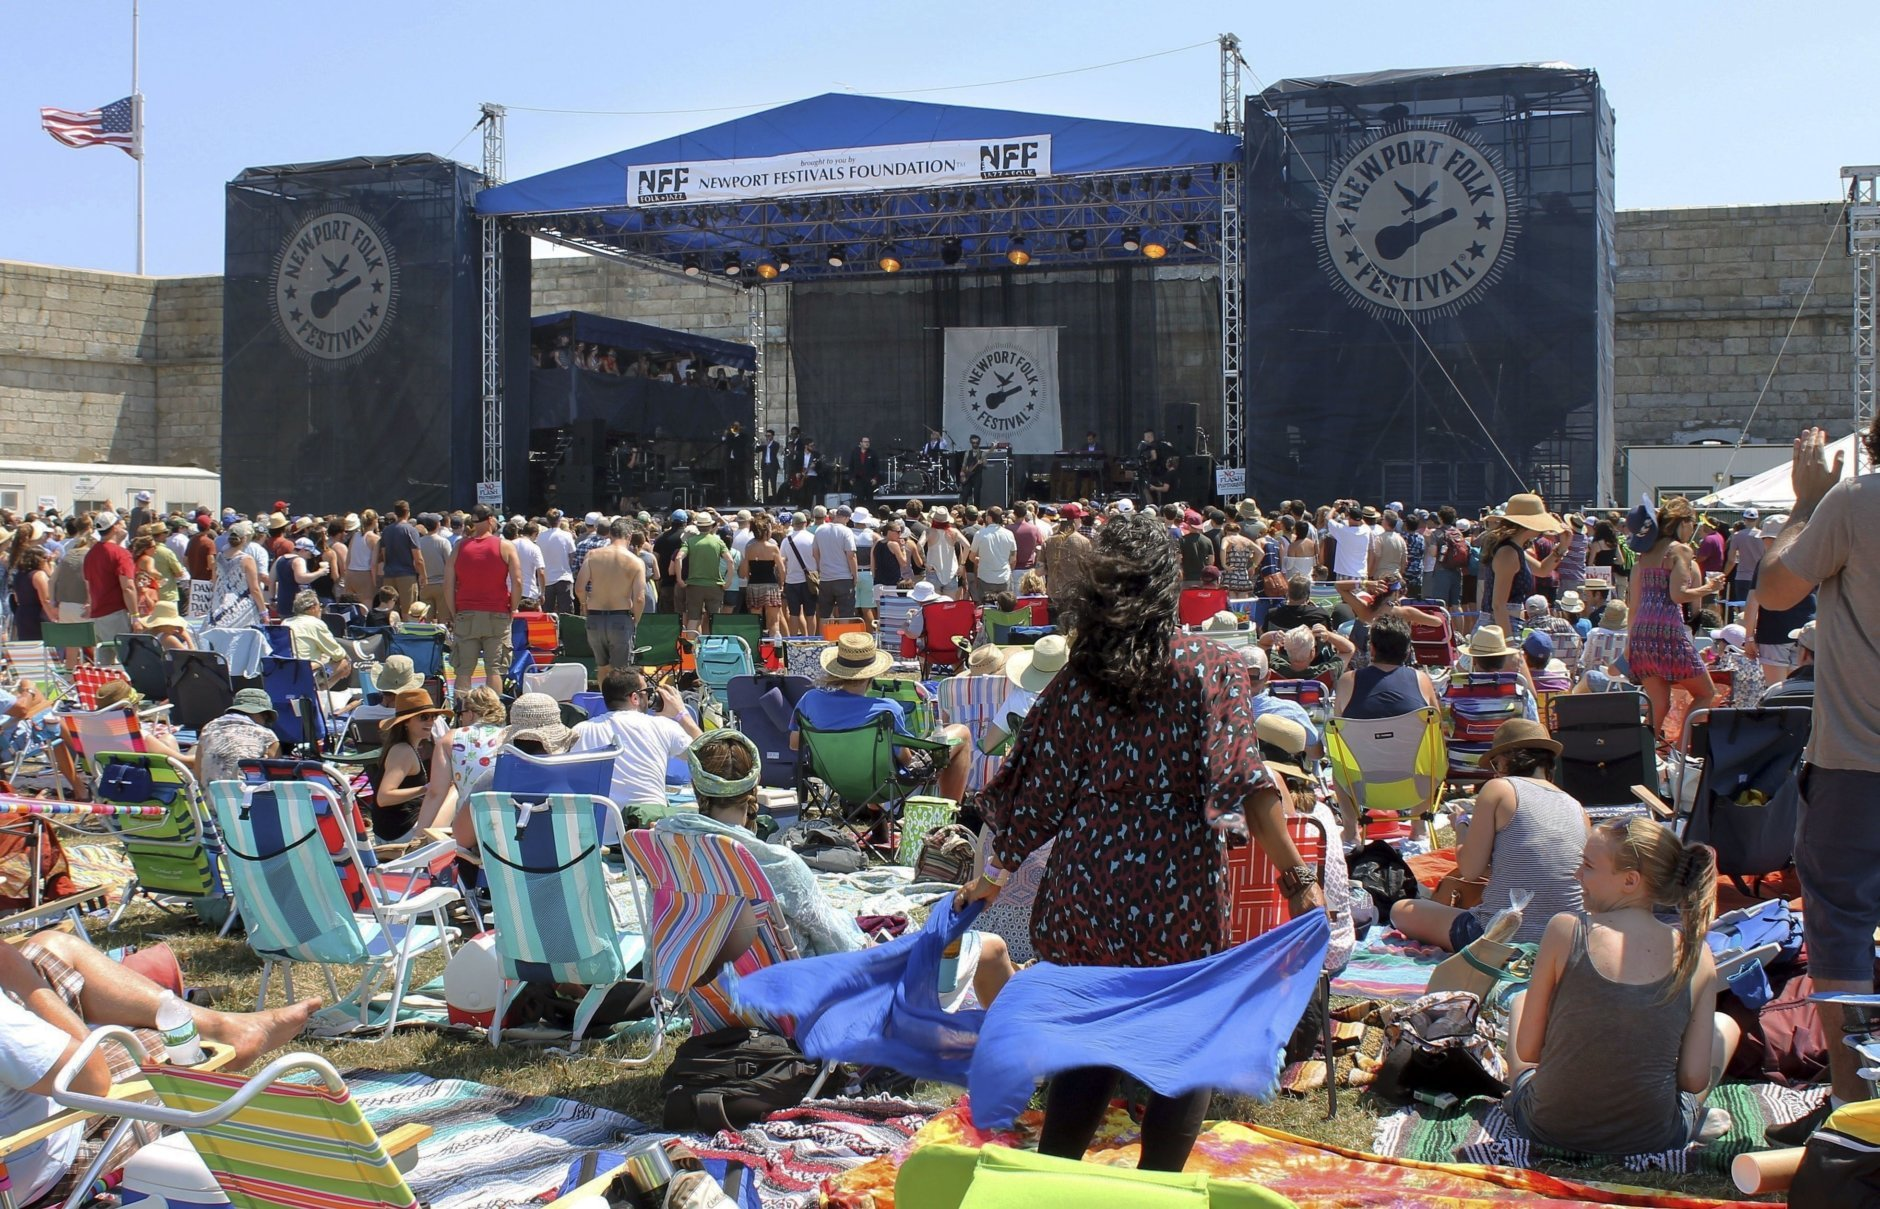 The audience dances to St. Paul and the Broken Bones at the Newport Folk Festival on Friday, July 22, 2016, in Newport, R.I., the first of three days of concerts at Fort Adams State Park. (AP Photo/Michelle R. Smith)